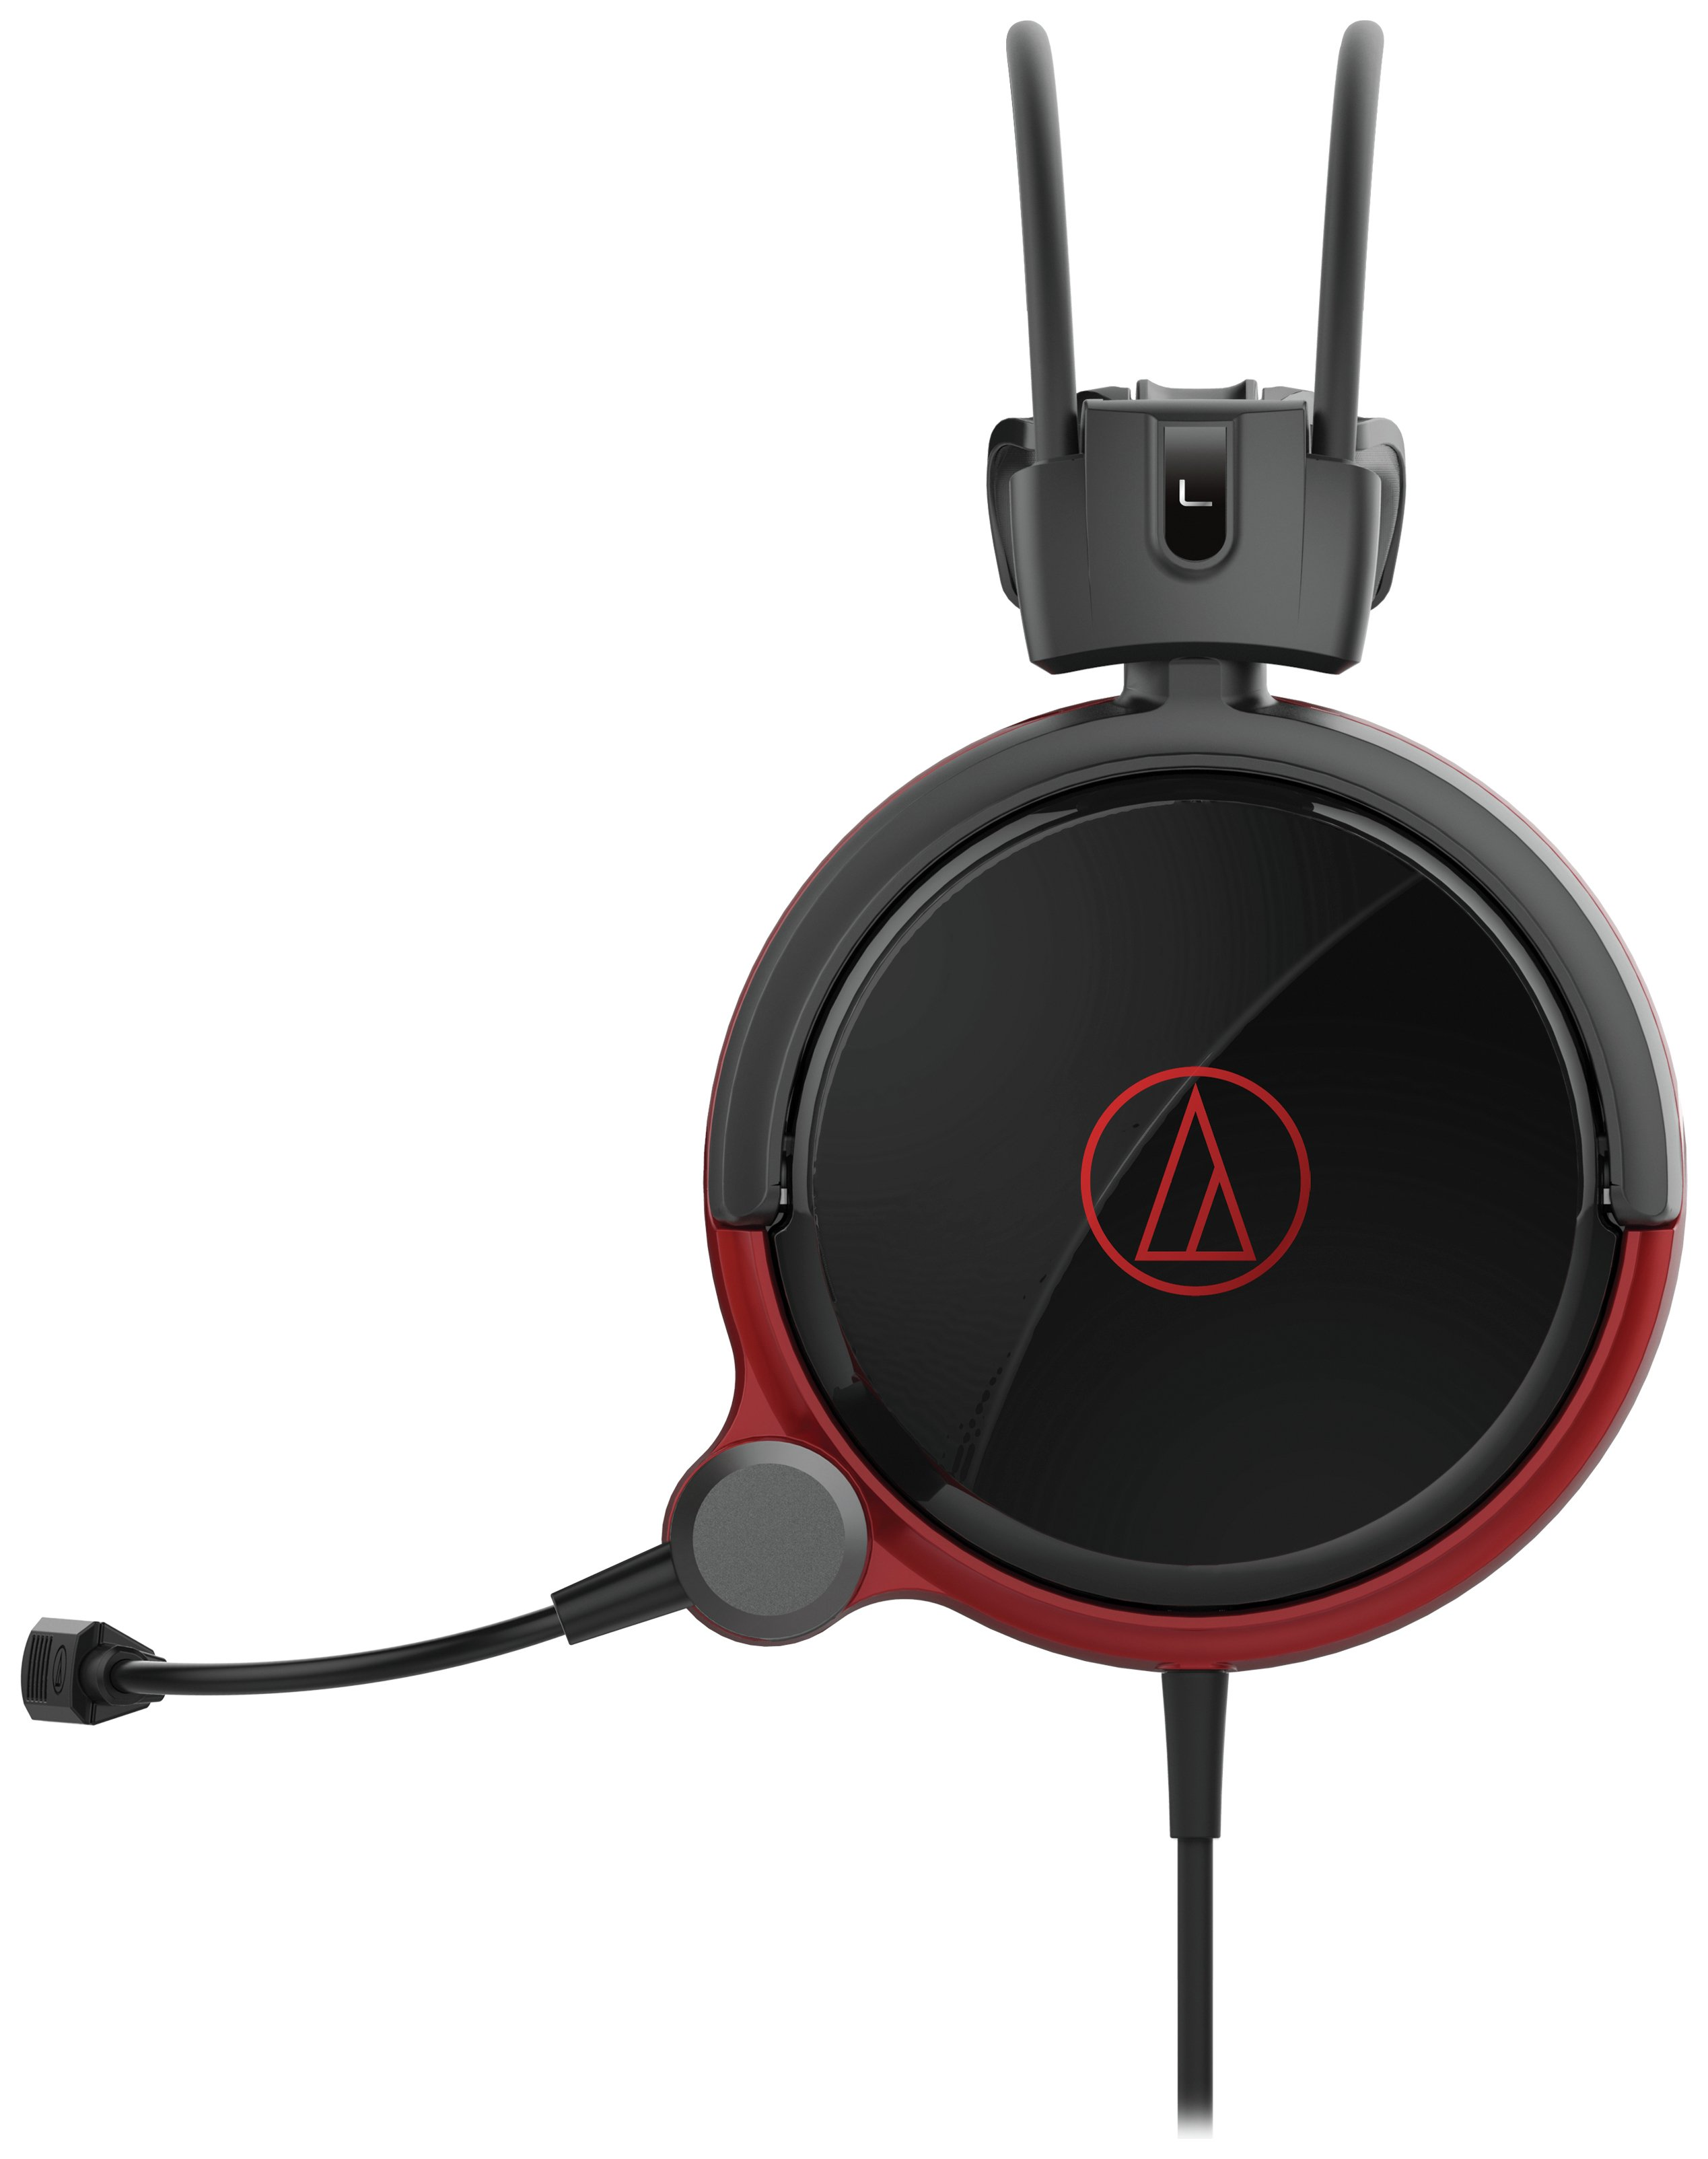 Image of Audio Technica ATH-AG1X Gaming Headset - Black/Red.